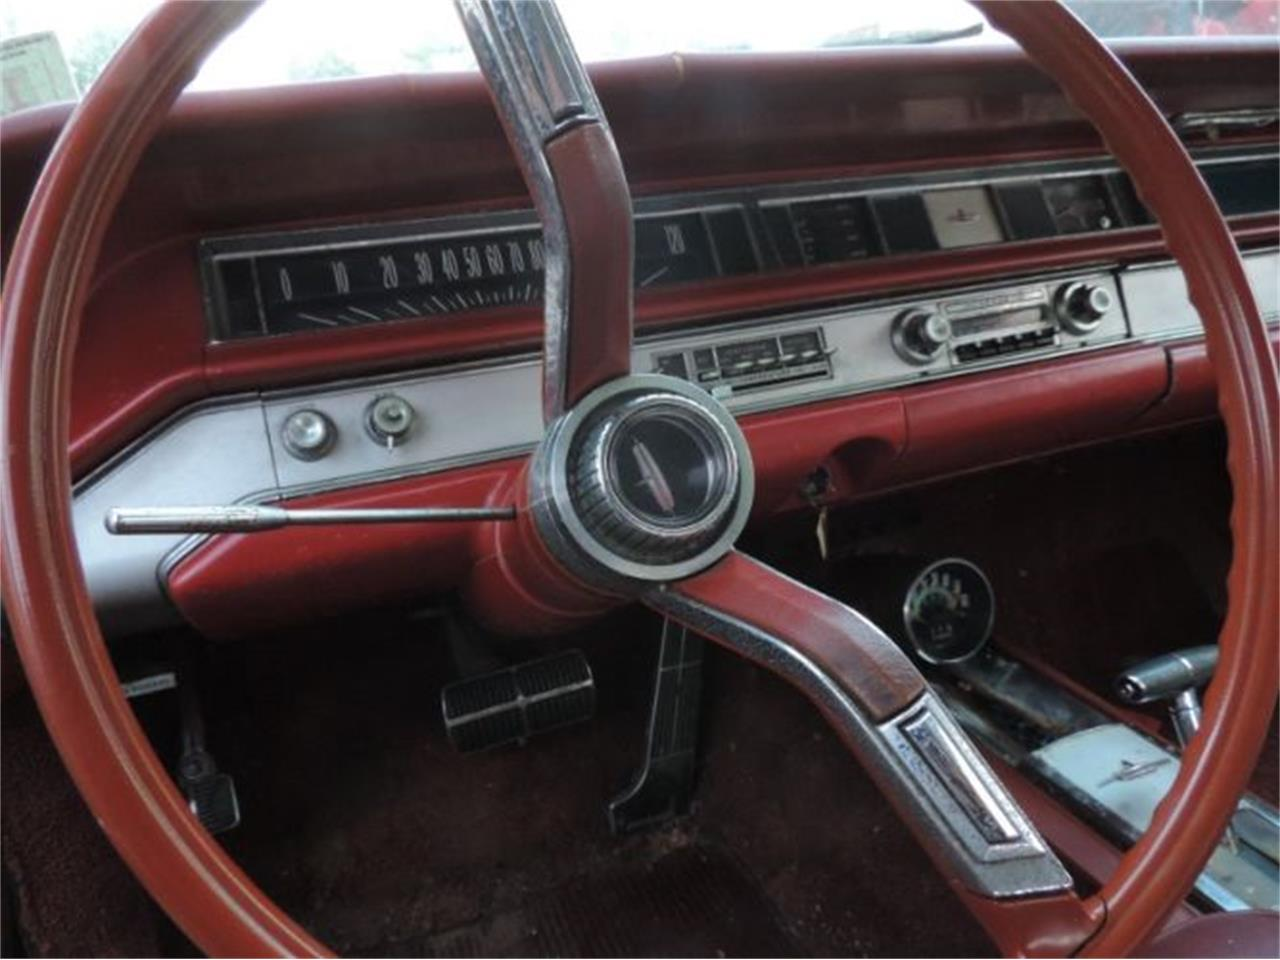 1964 Oldsmobile Jetstar I for sale in Cadillac, MI – photo 16